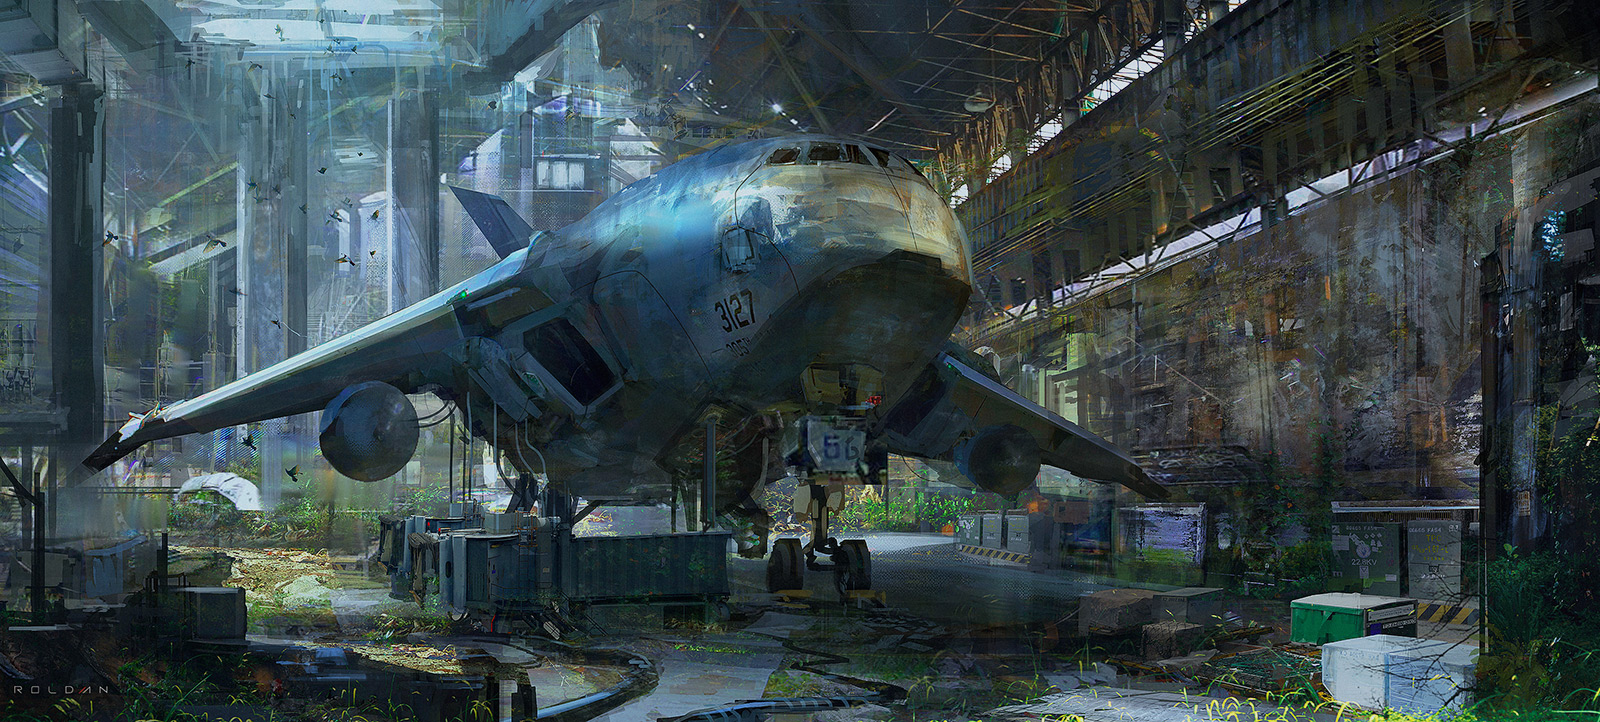 how to become a concept artist for movies reddit